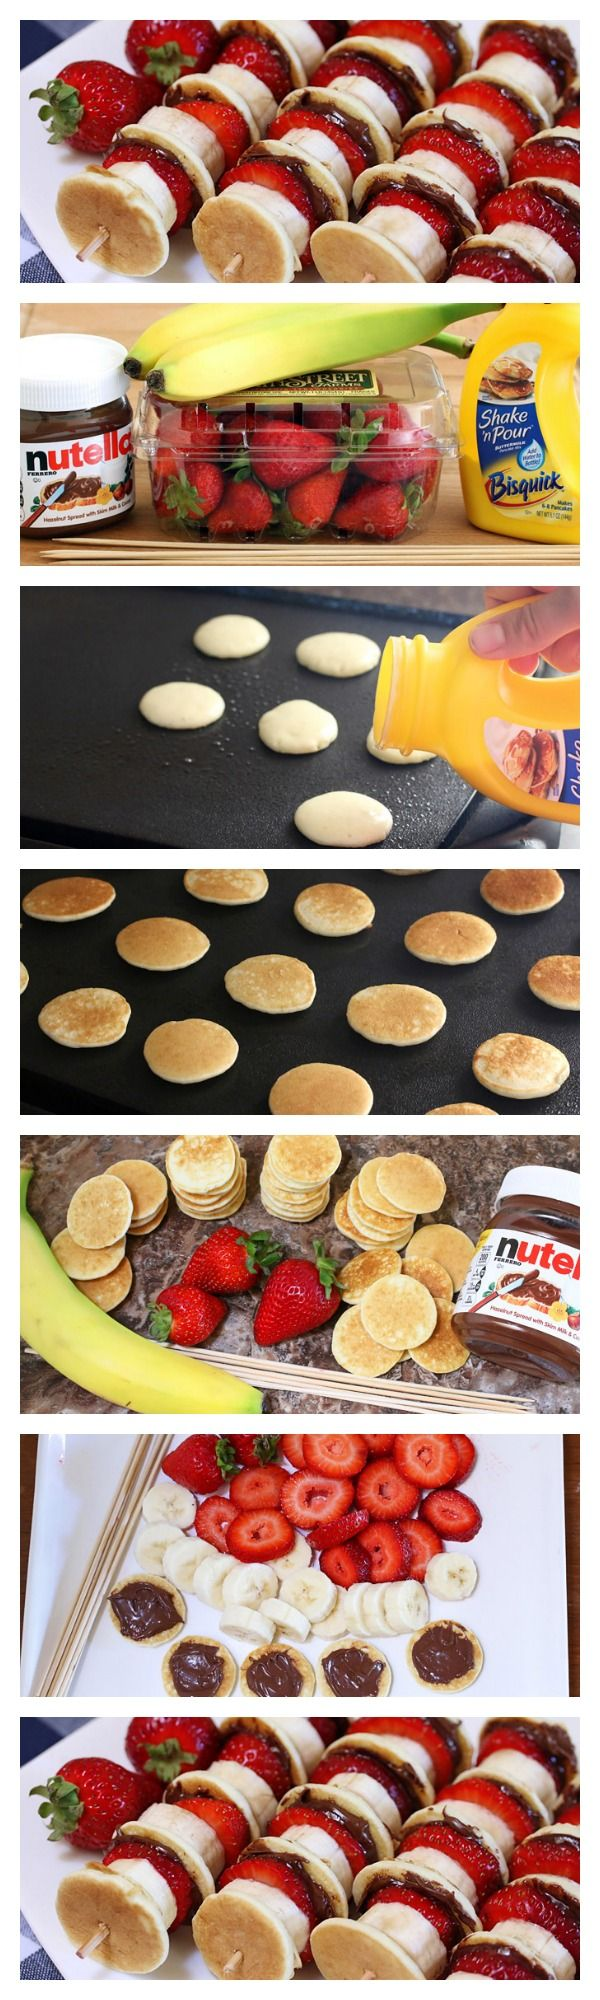 Nutella Mini Pancake Kabobs OMG!!! These look AMAZING!! TH